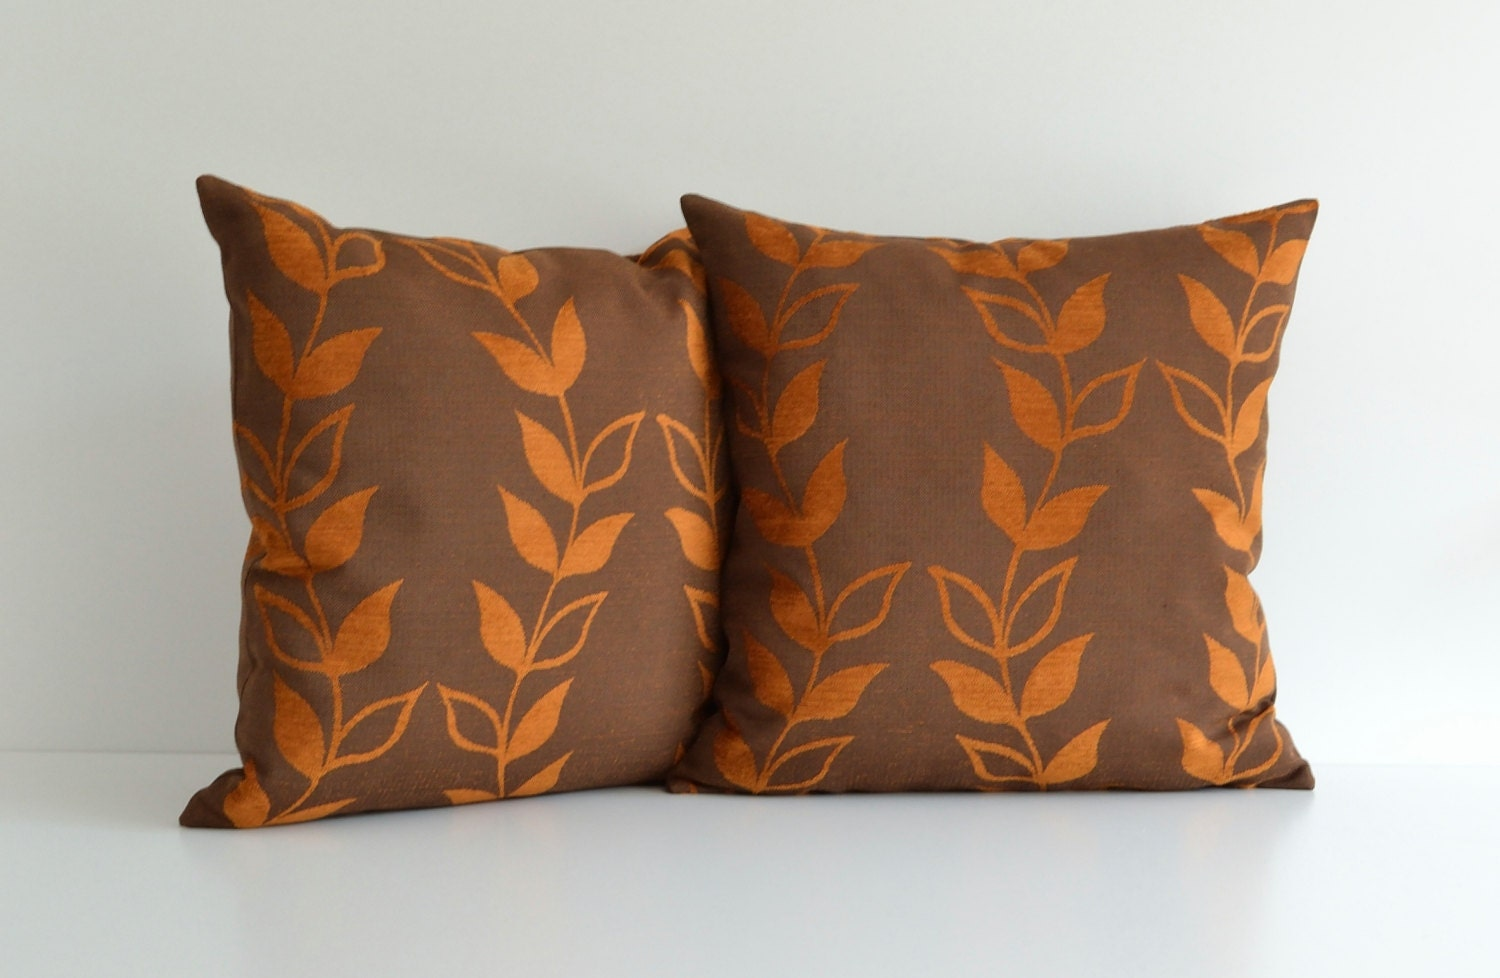 Throw pillows for brown sofa brown faux leather accent pillows set of 2 13340875 overstock Decorative pillows living room